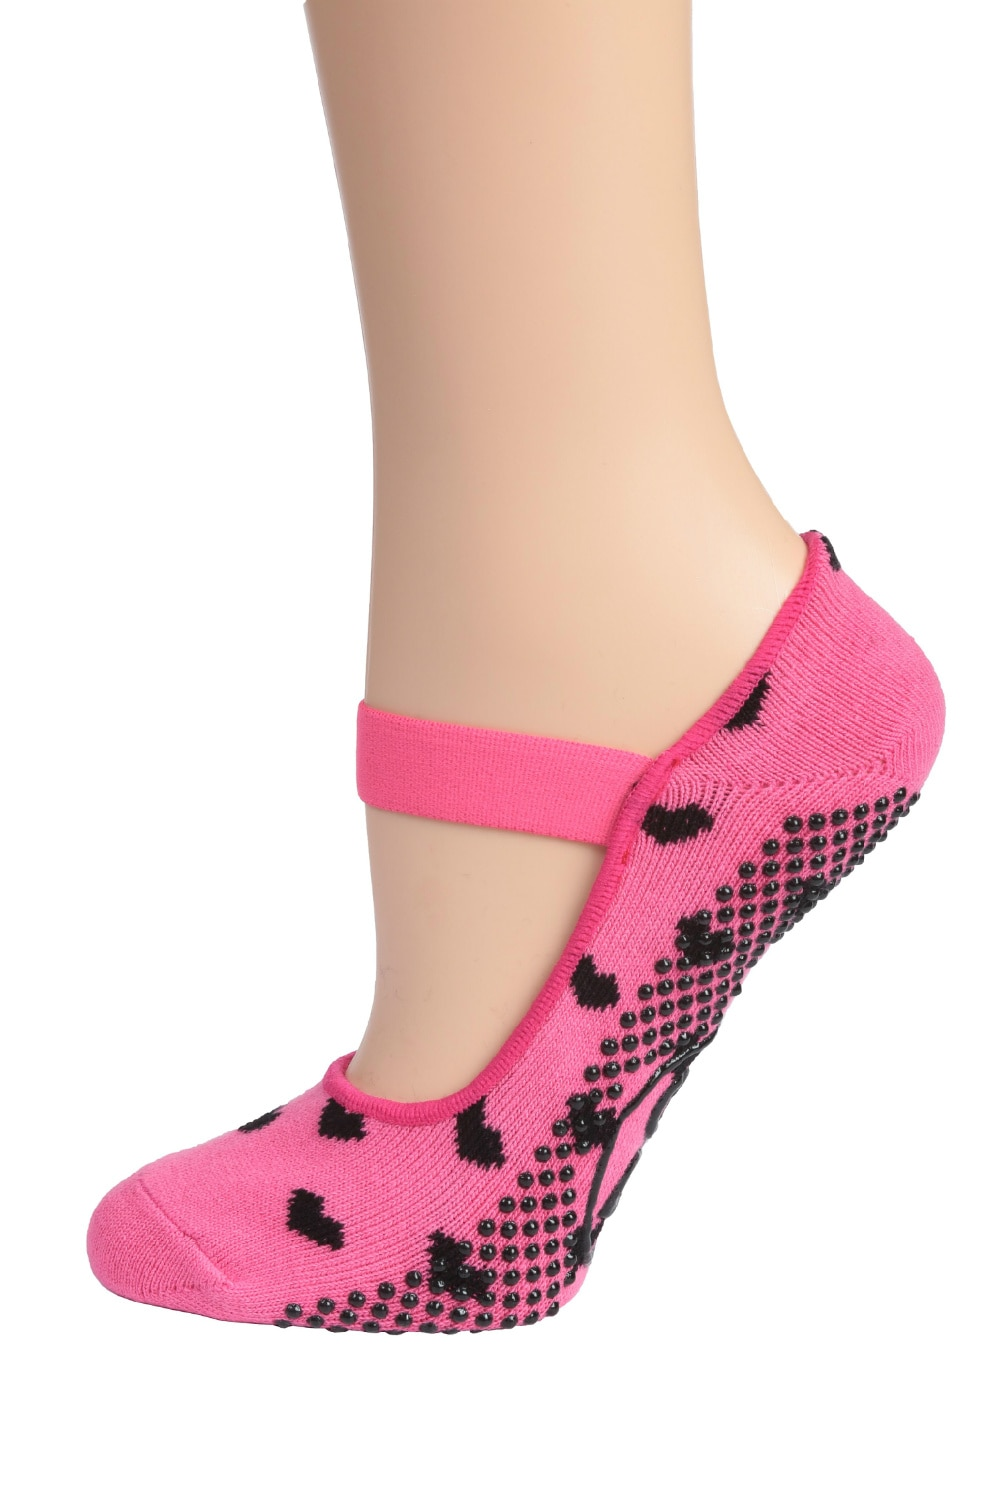 DG Sports Pink with Black Hearts Women's Yoga Mary Jane Socks with Grips (2-pack)